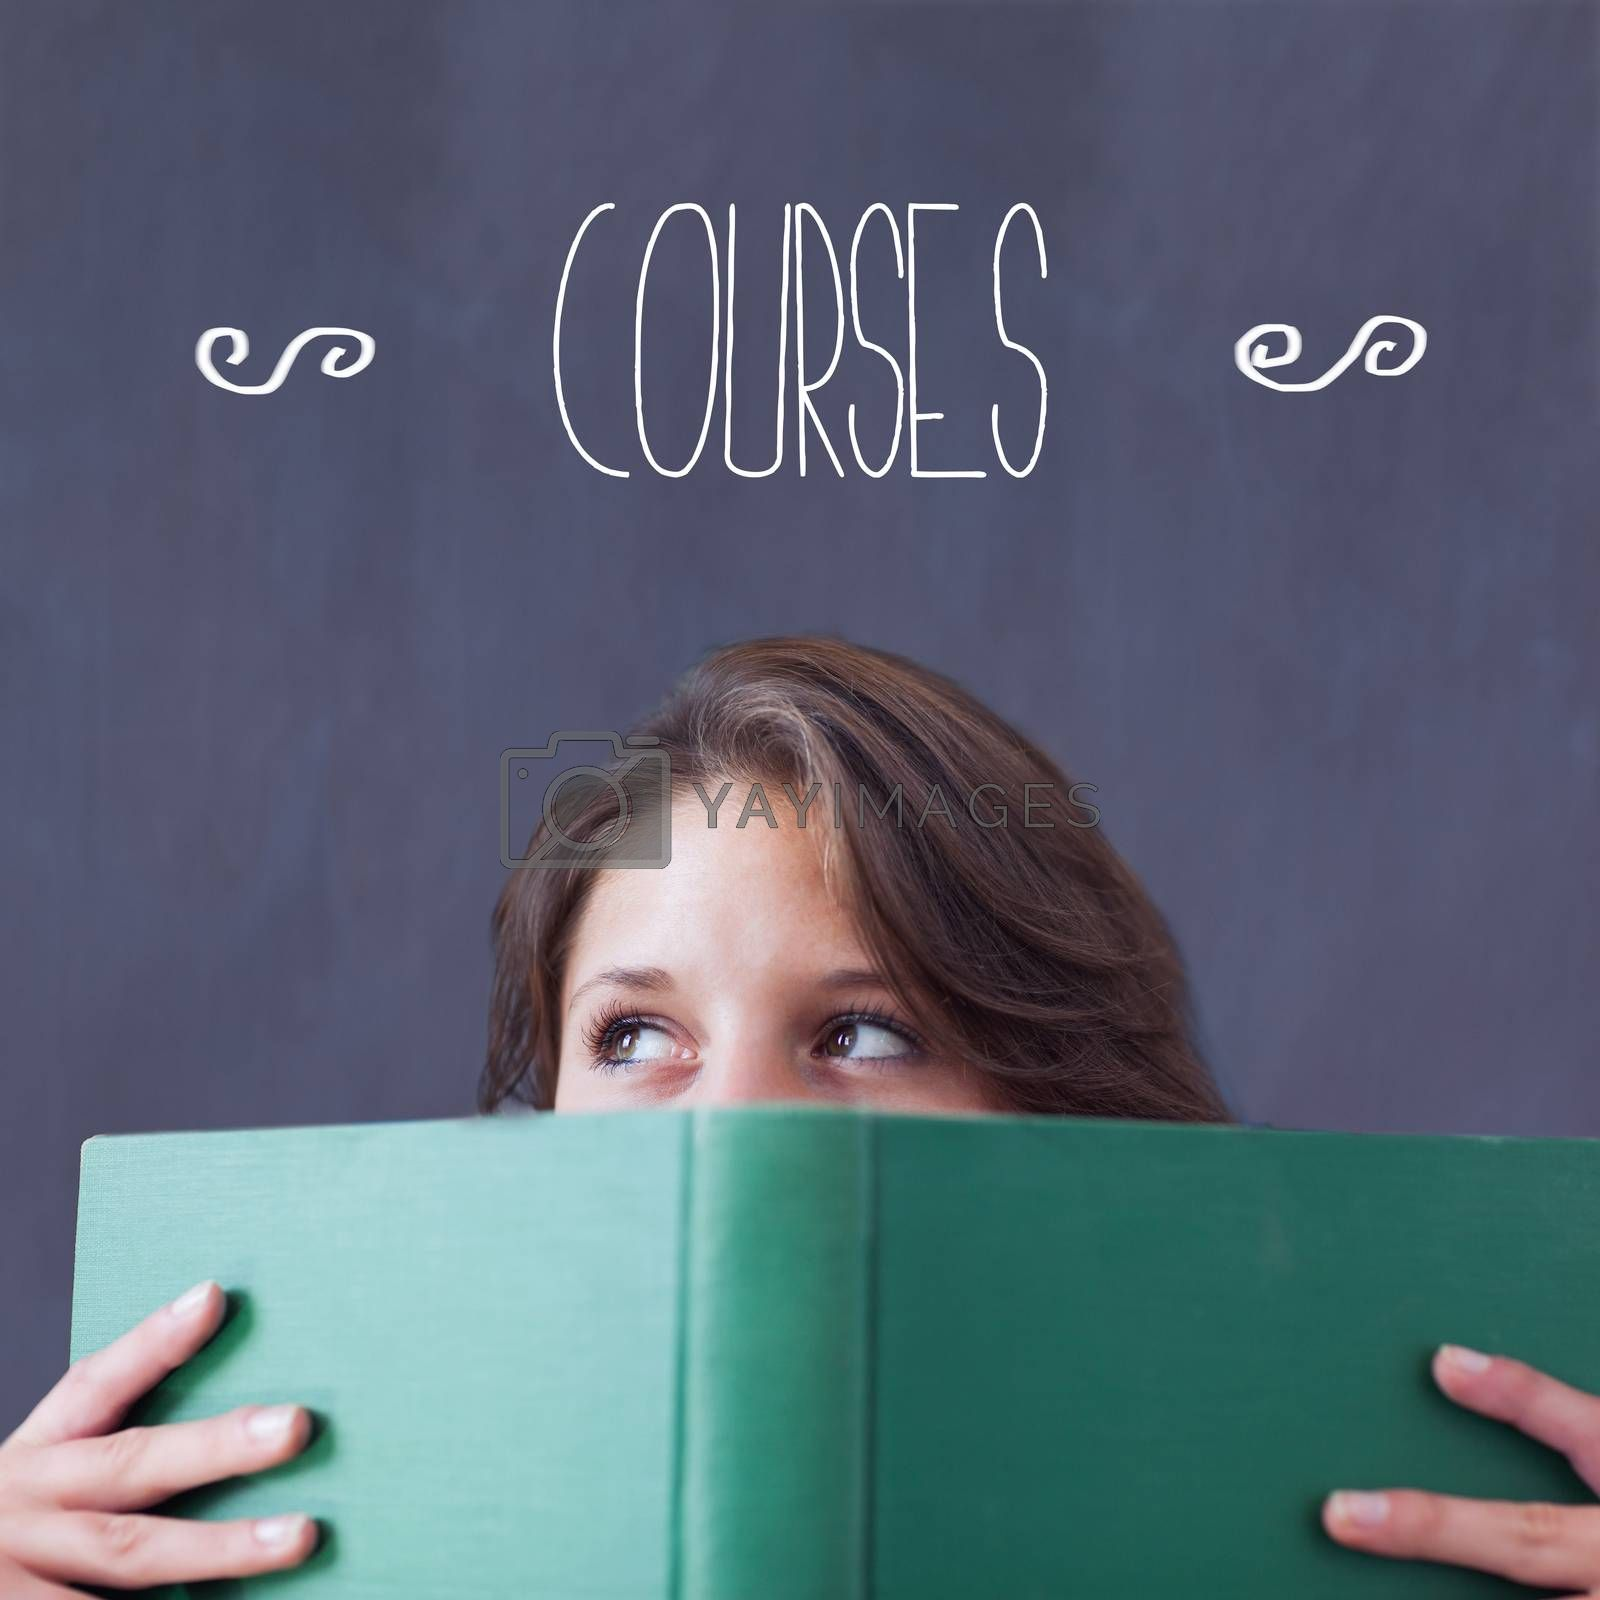 The word courses against student holding book